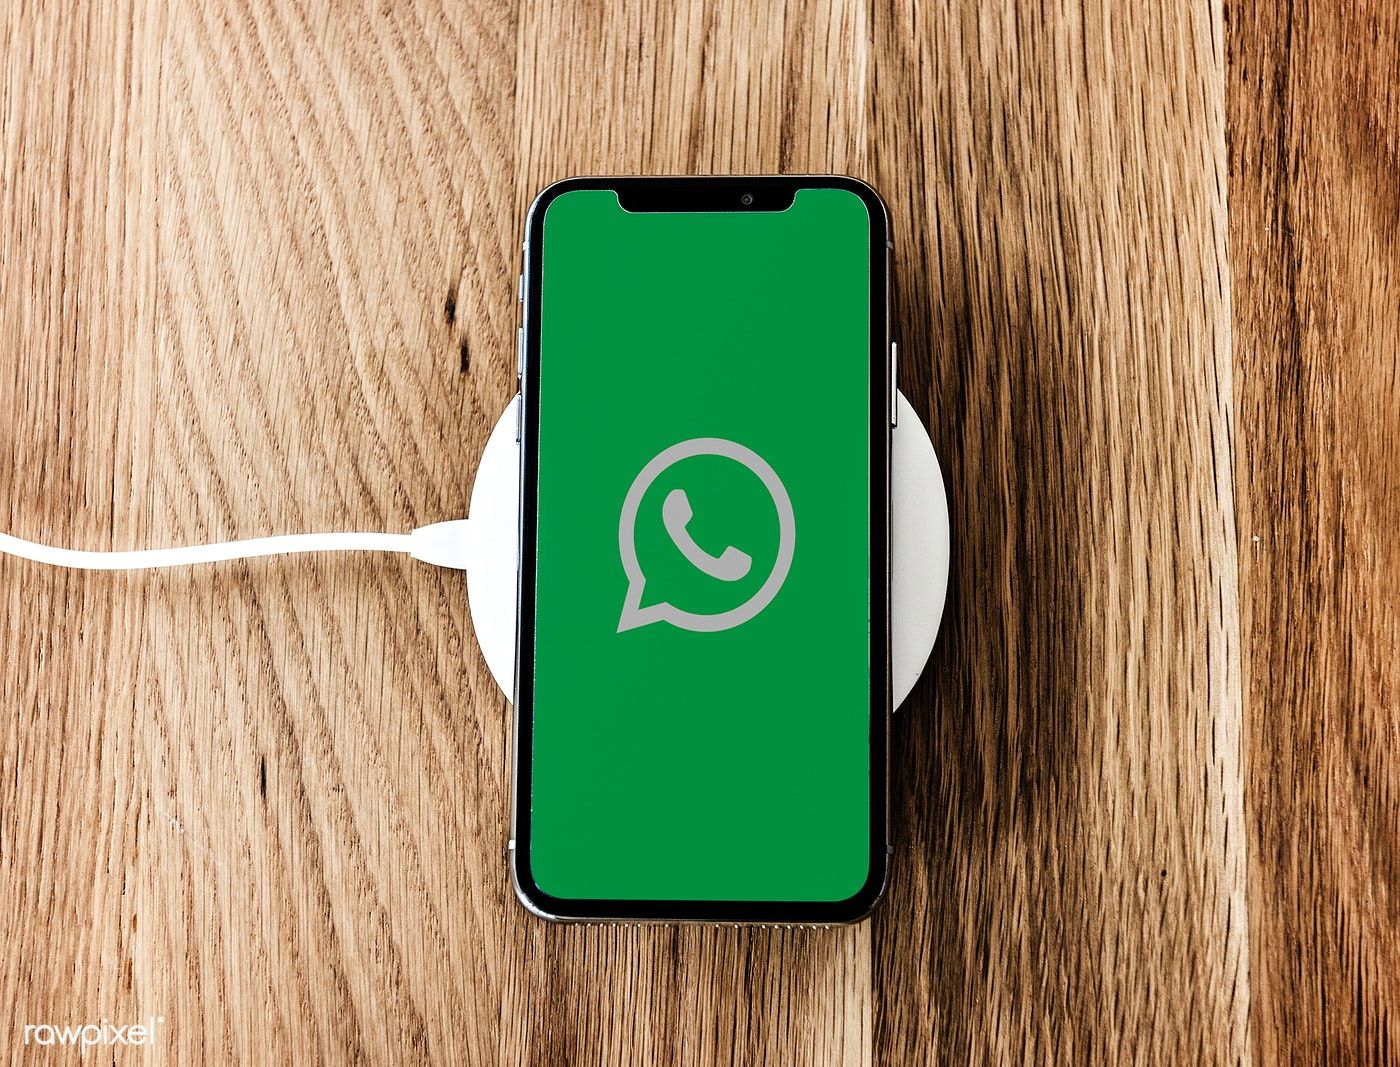 WhatsApp application showing on a phone free image by